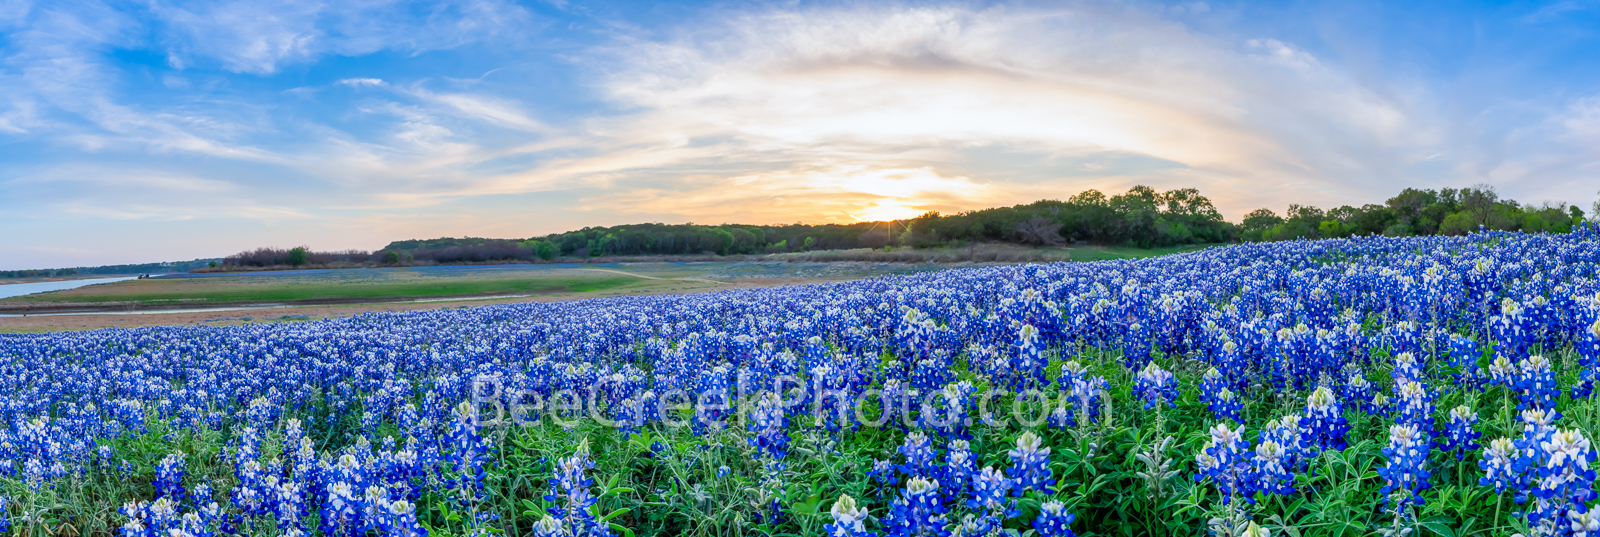 texas, bluebonnets, lake bluebonnets, texas wildflower, texas bluebonnet, images of bluebonnets, texas bluebonnets, images of texas, tx hill country, texas, sunset, field of bluebonnet, texas hill country, blue bonnet, blue bonnets, texas bluebonnet, art, flowers, field of wildflowers, , wildflowers, texas, river, flowers, hill country, landscape, lupine, texas lupines, nature, bluebonnets, landscape, bluebonnets texas, bluebonnet images, muleshoe park, lake travis, river, lake,